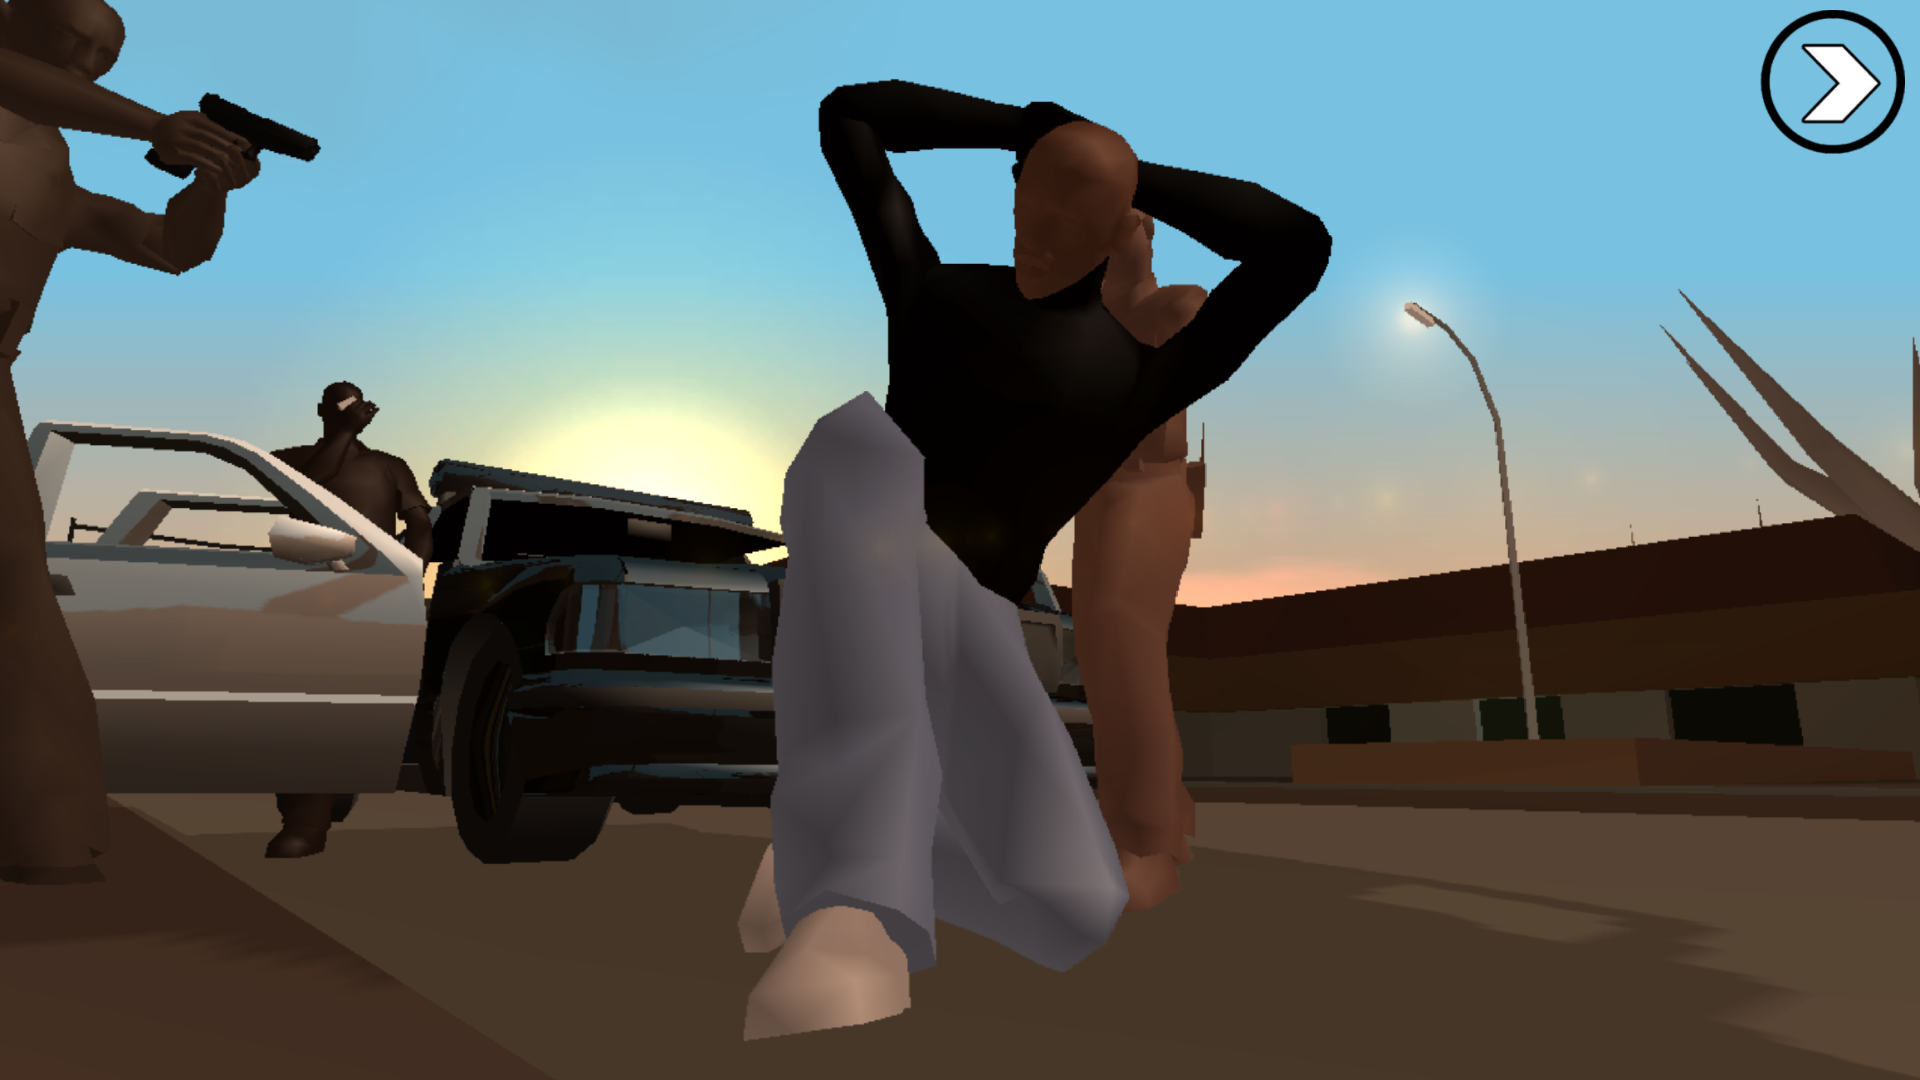 San Andreas Graphics not working right, images attached